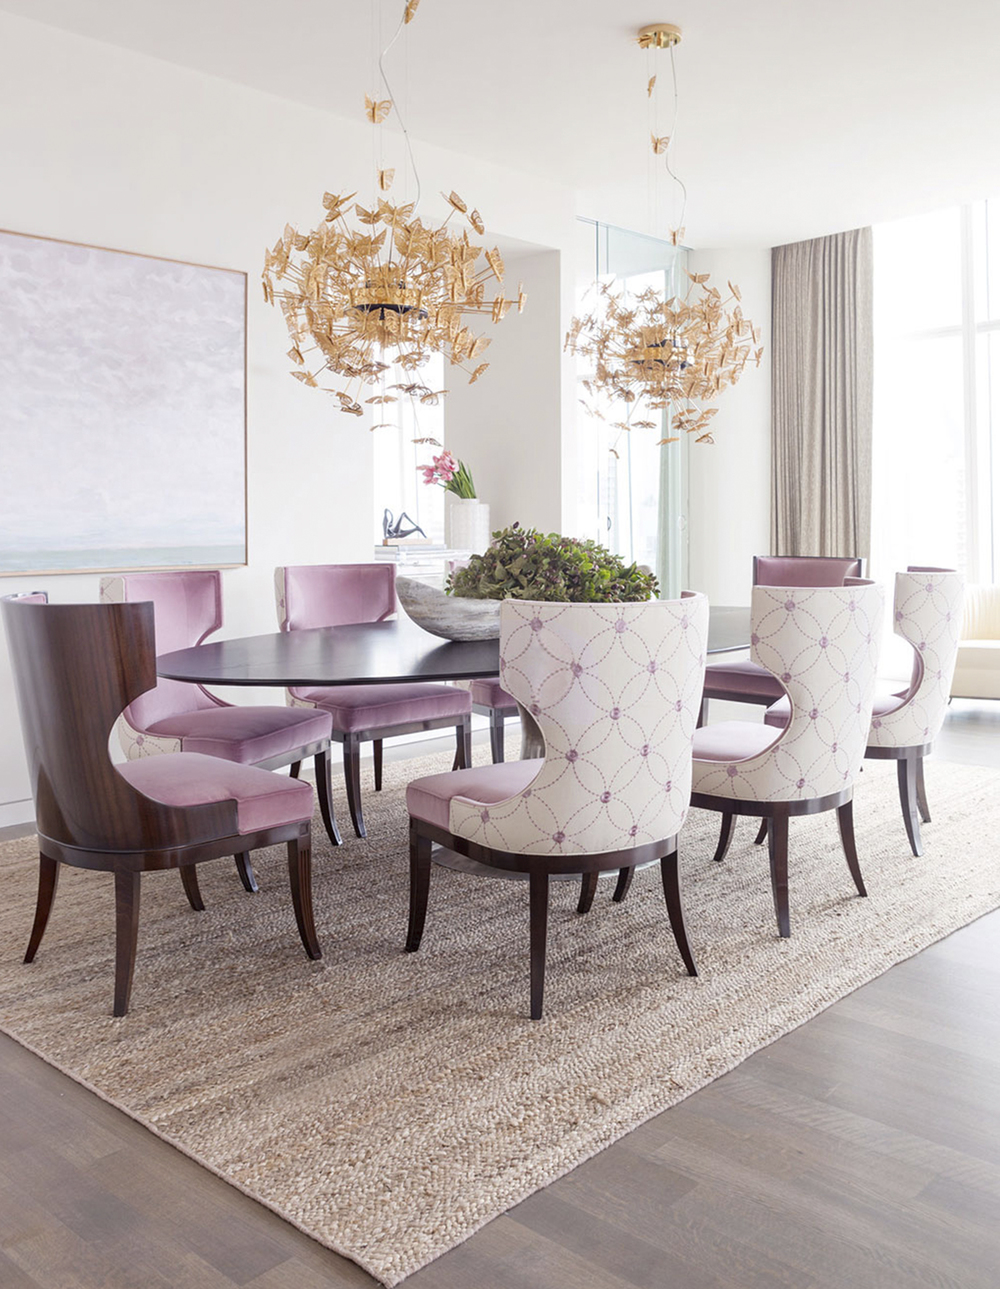 10 trendy dining rooms decoration ideas to inspire you